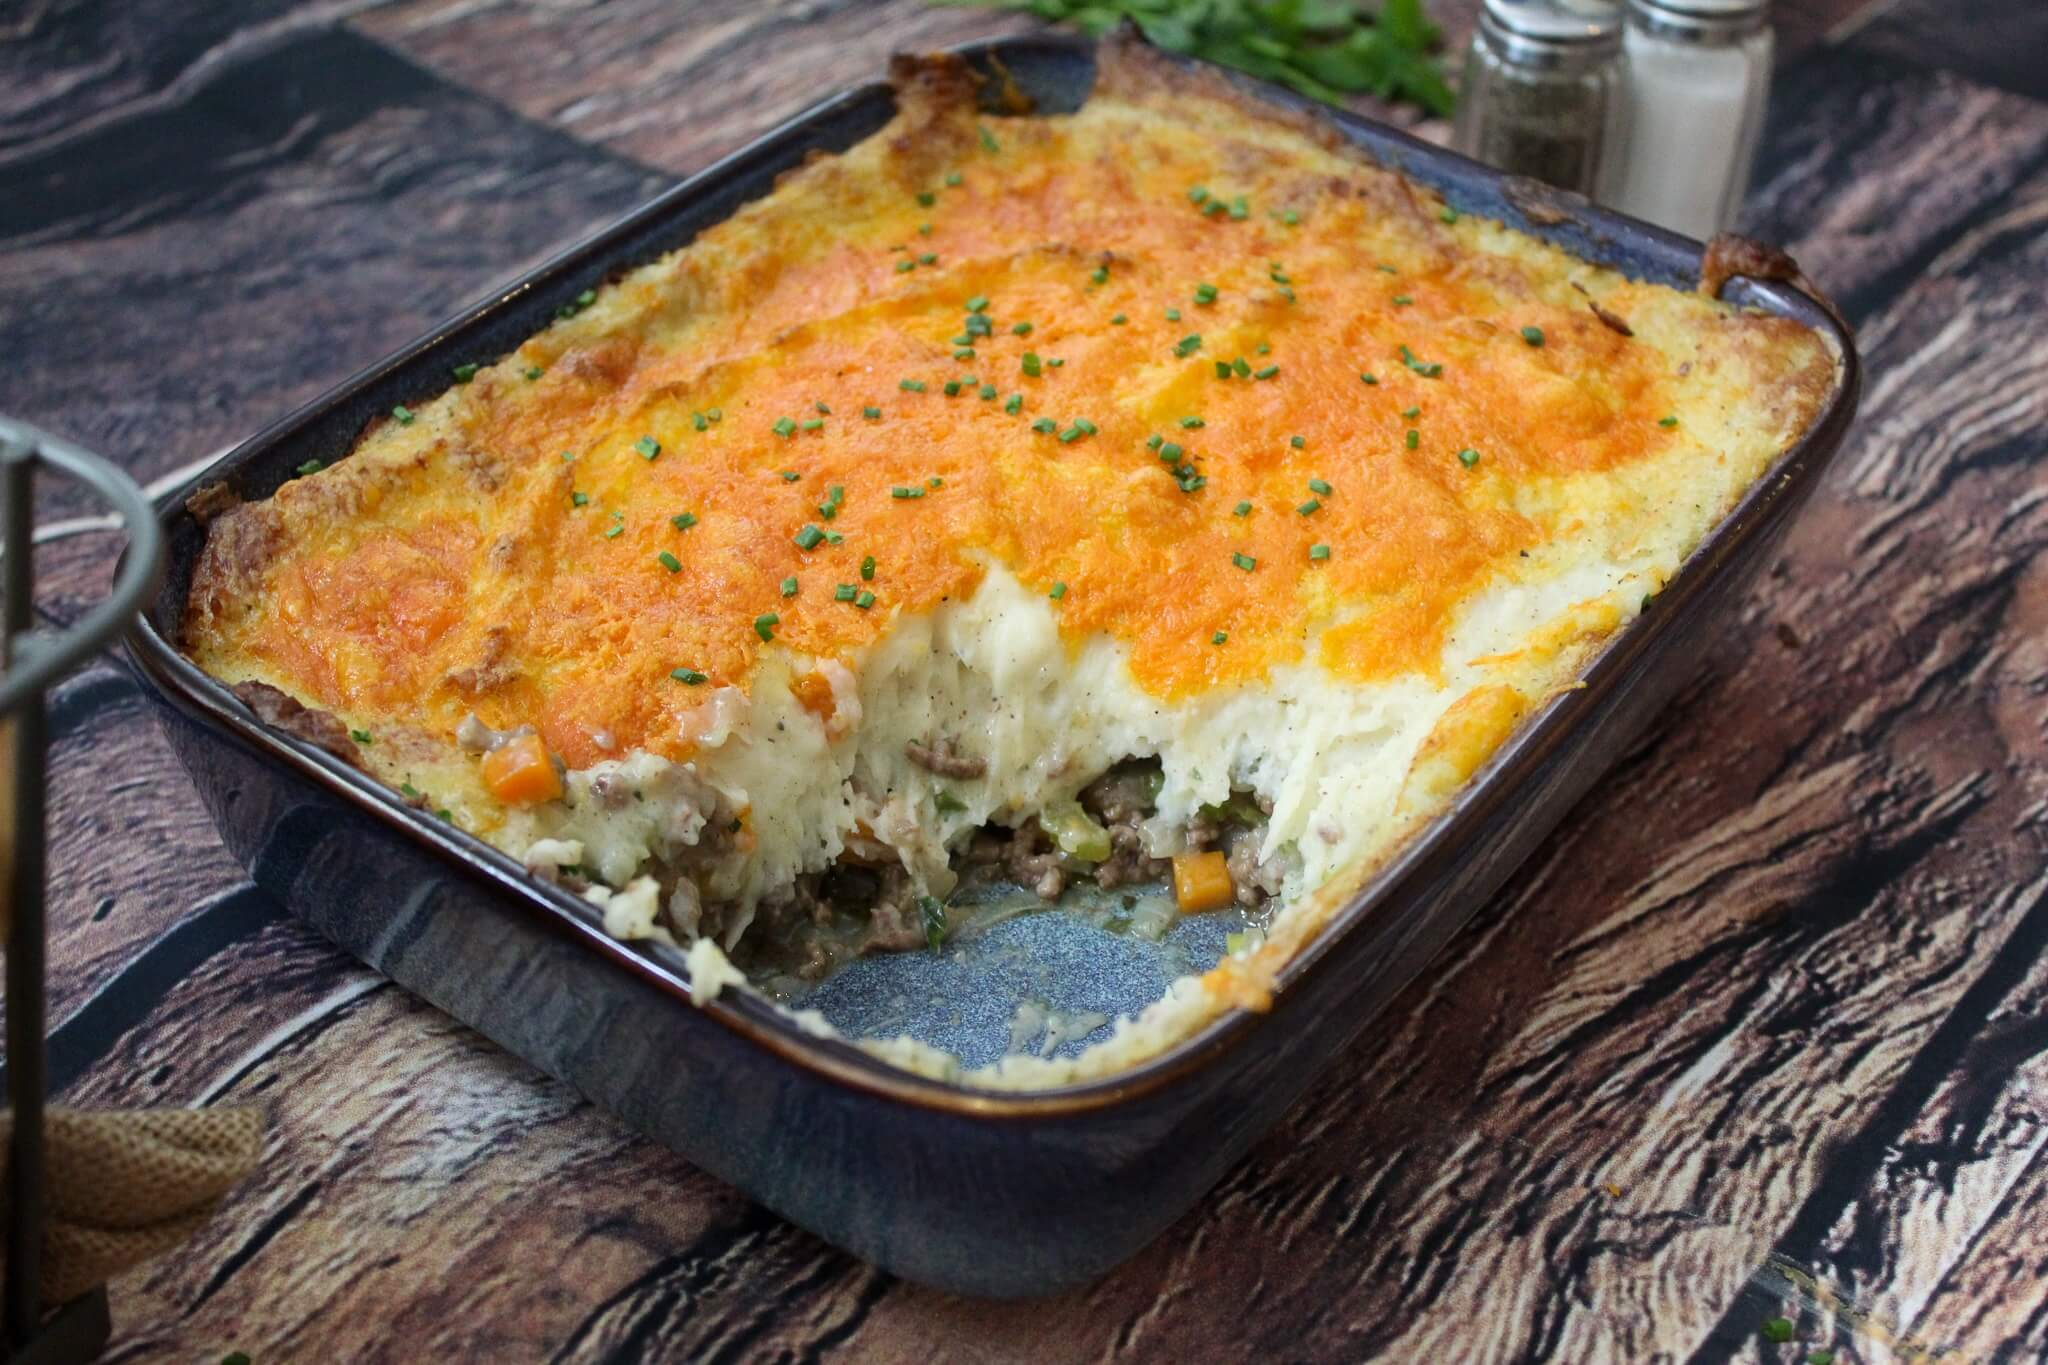 Cottage pie with a slice take out of it exposing the filling